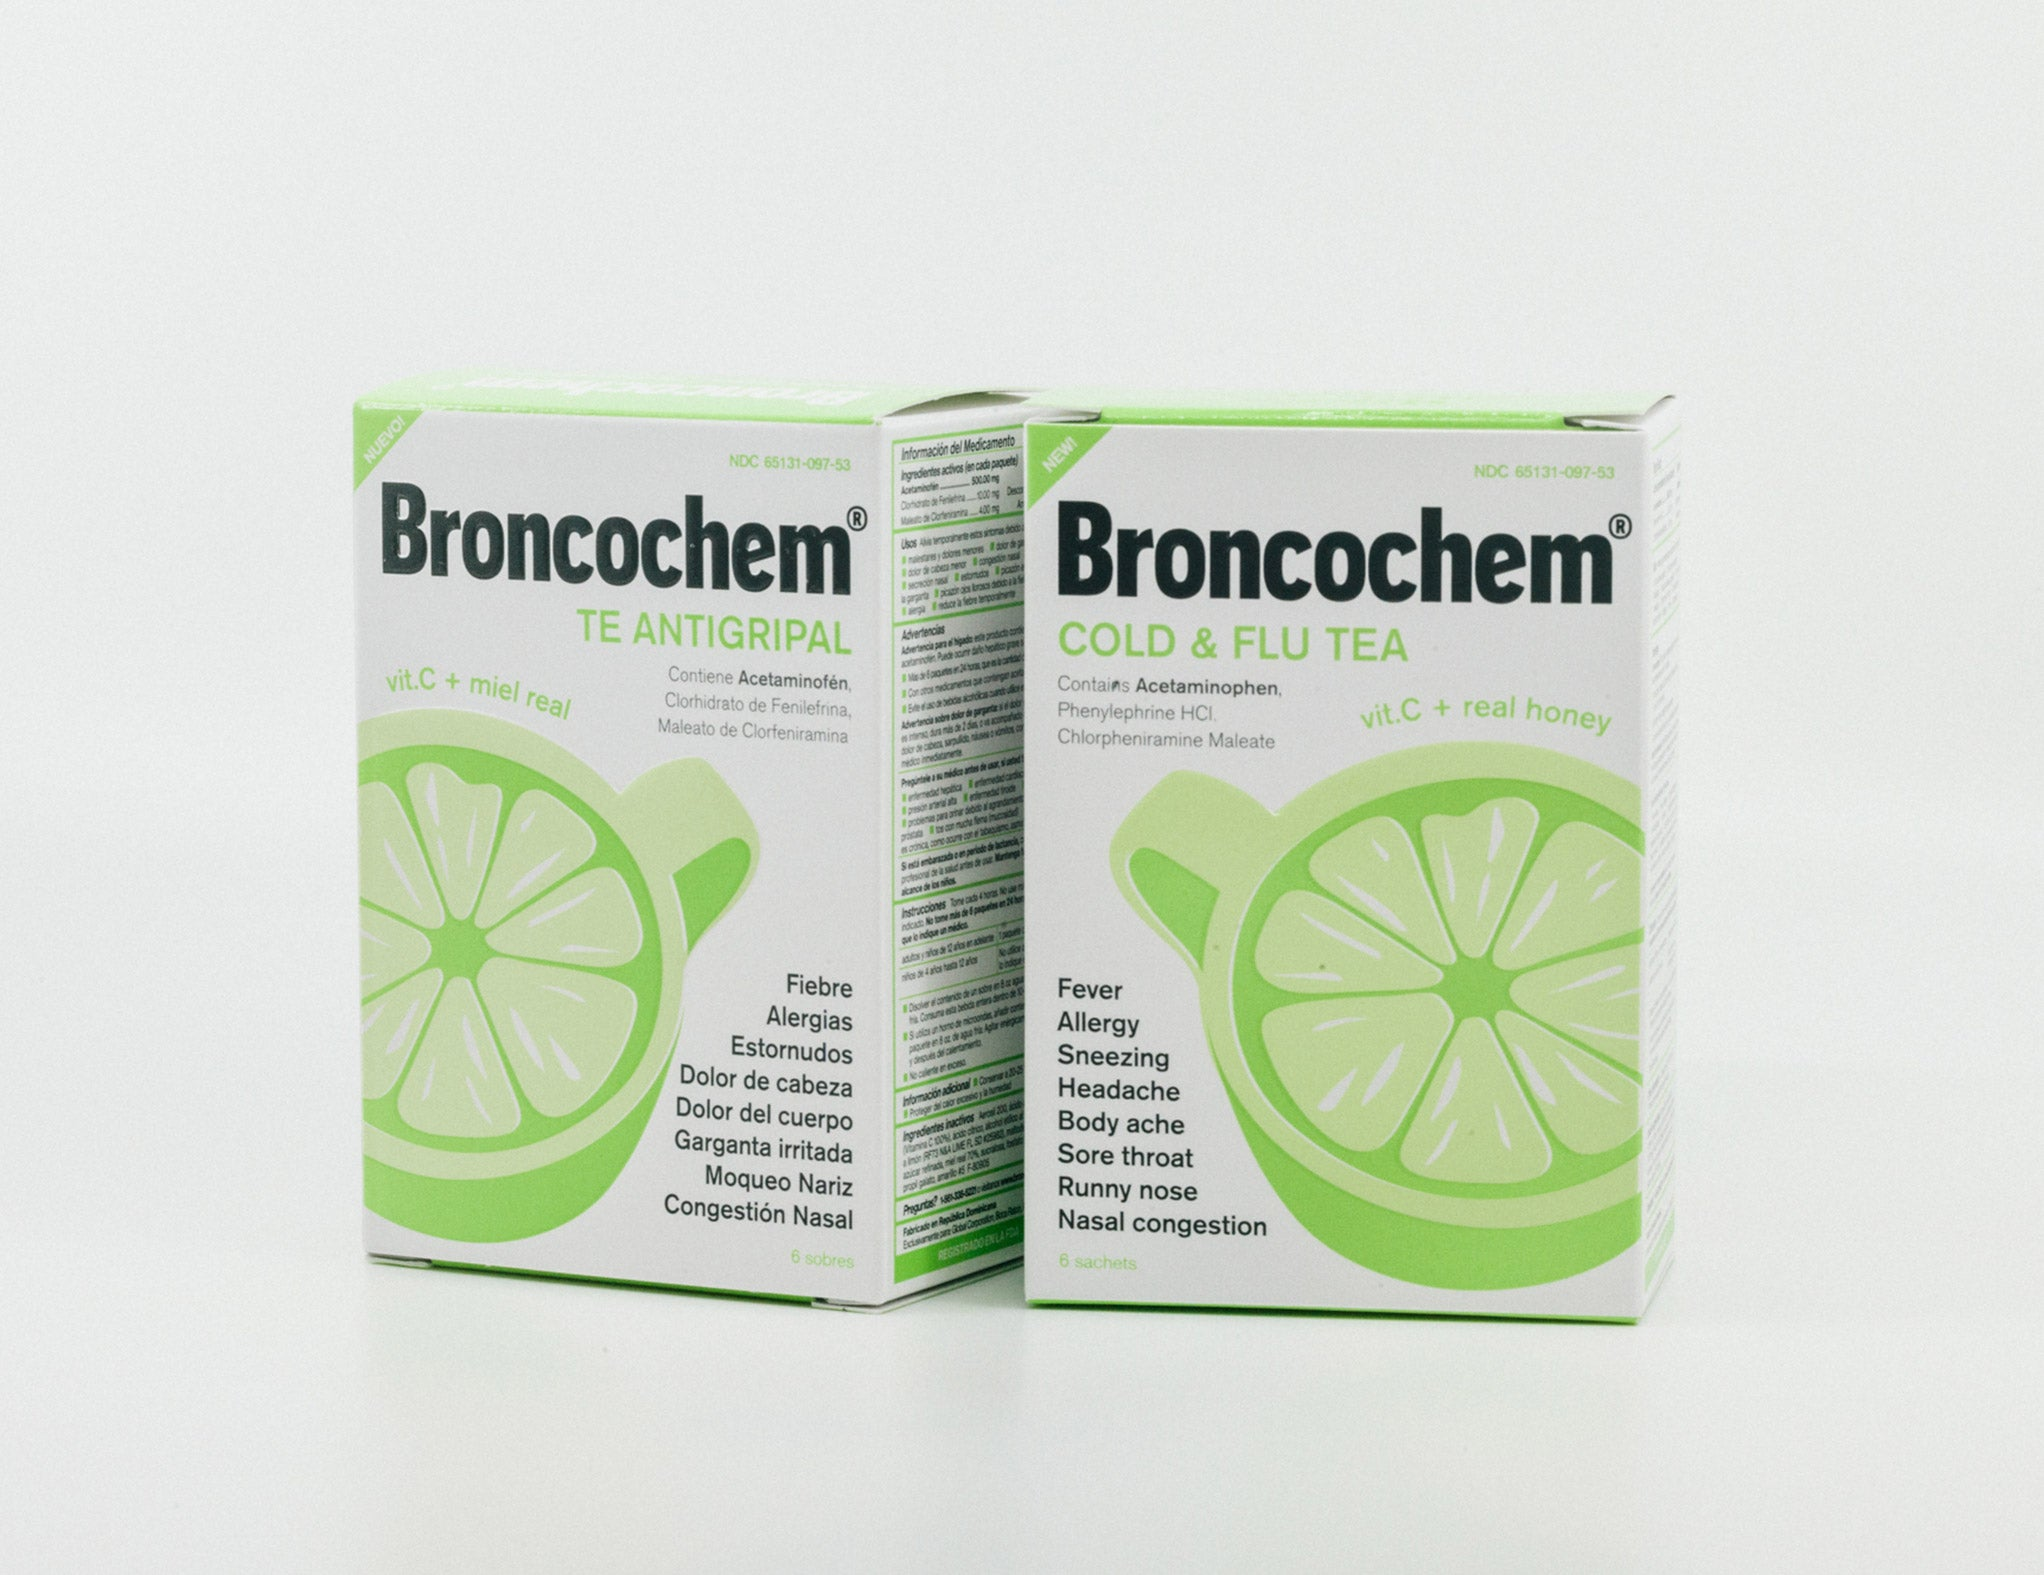 Broncochem Cold & Flu Tea (6 Packets)